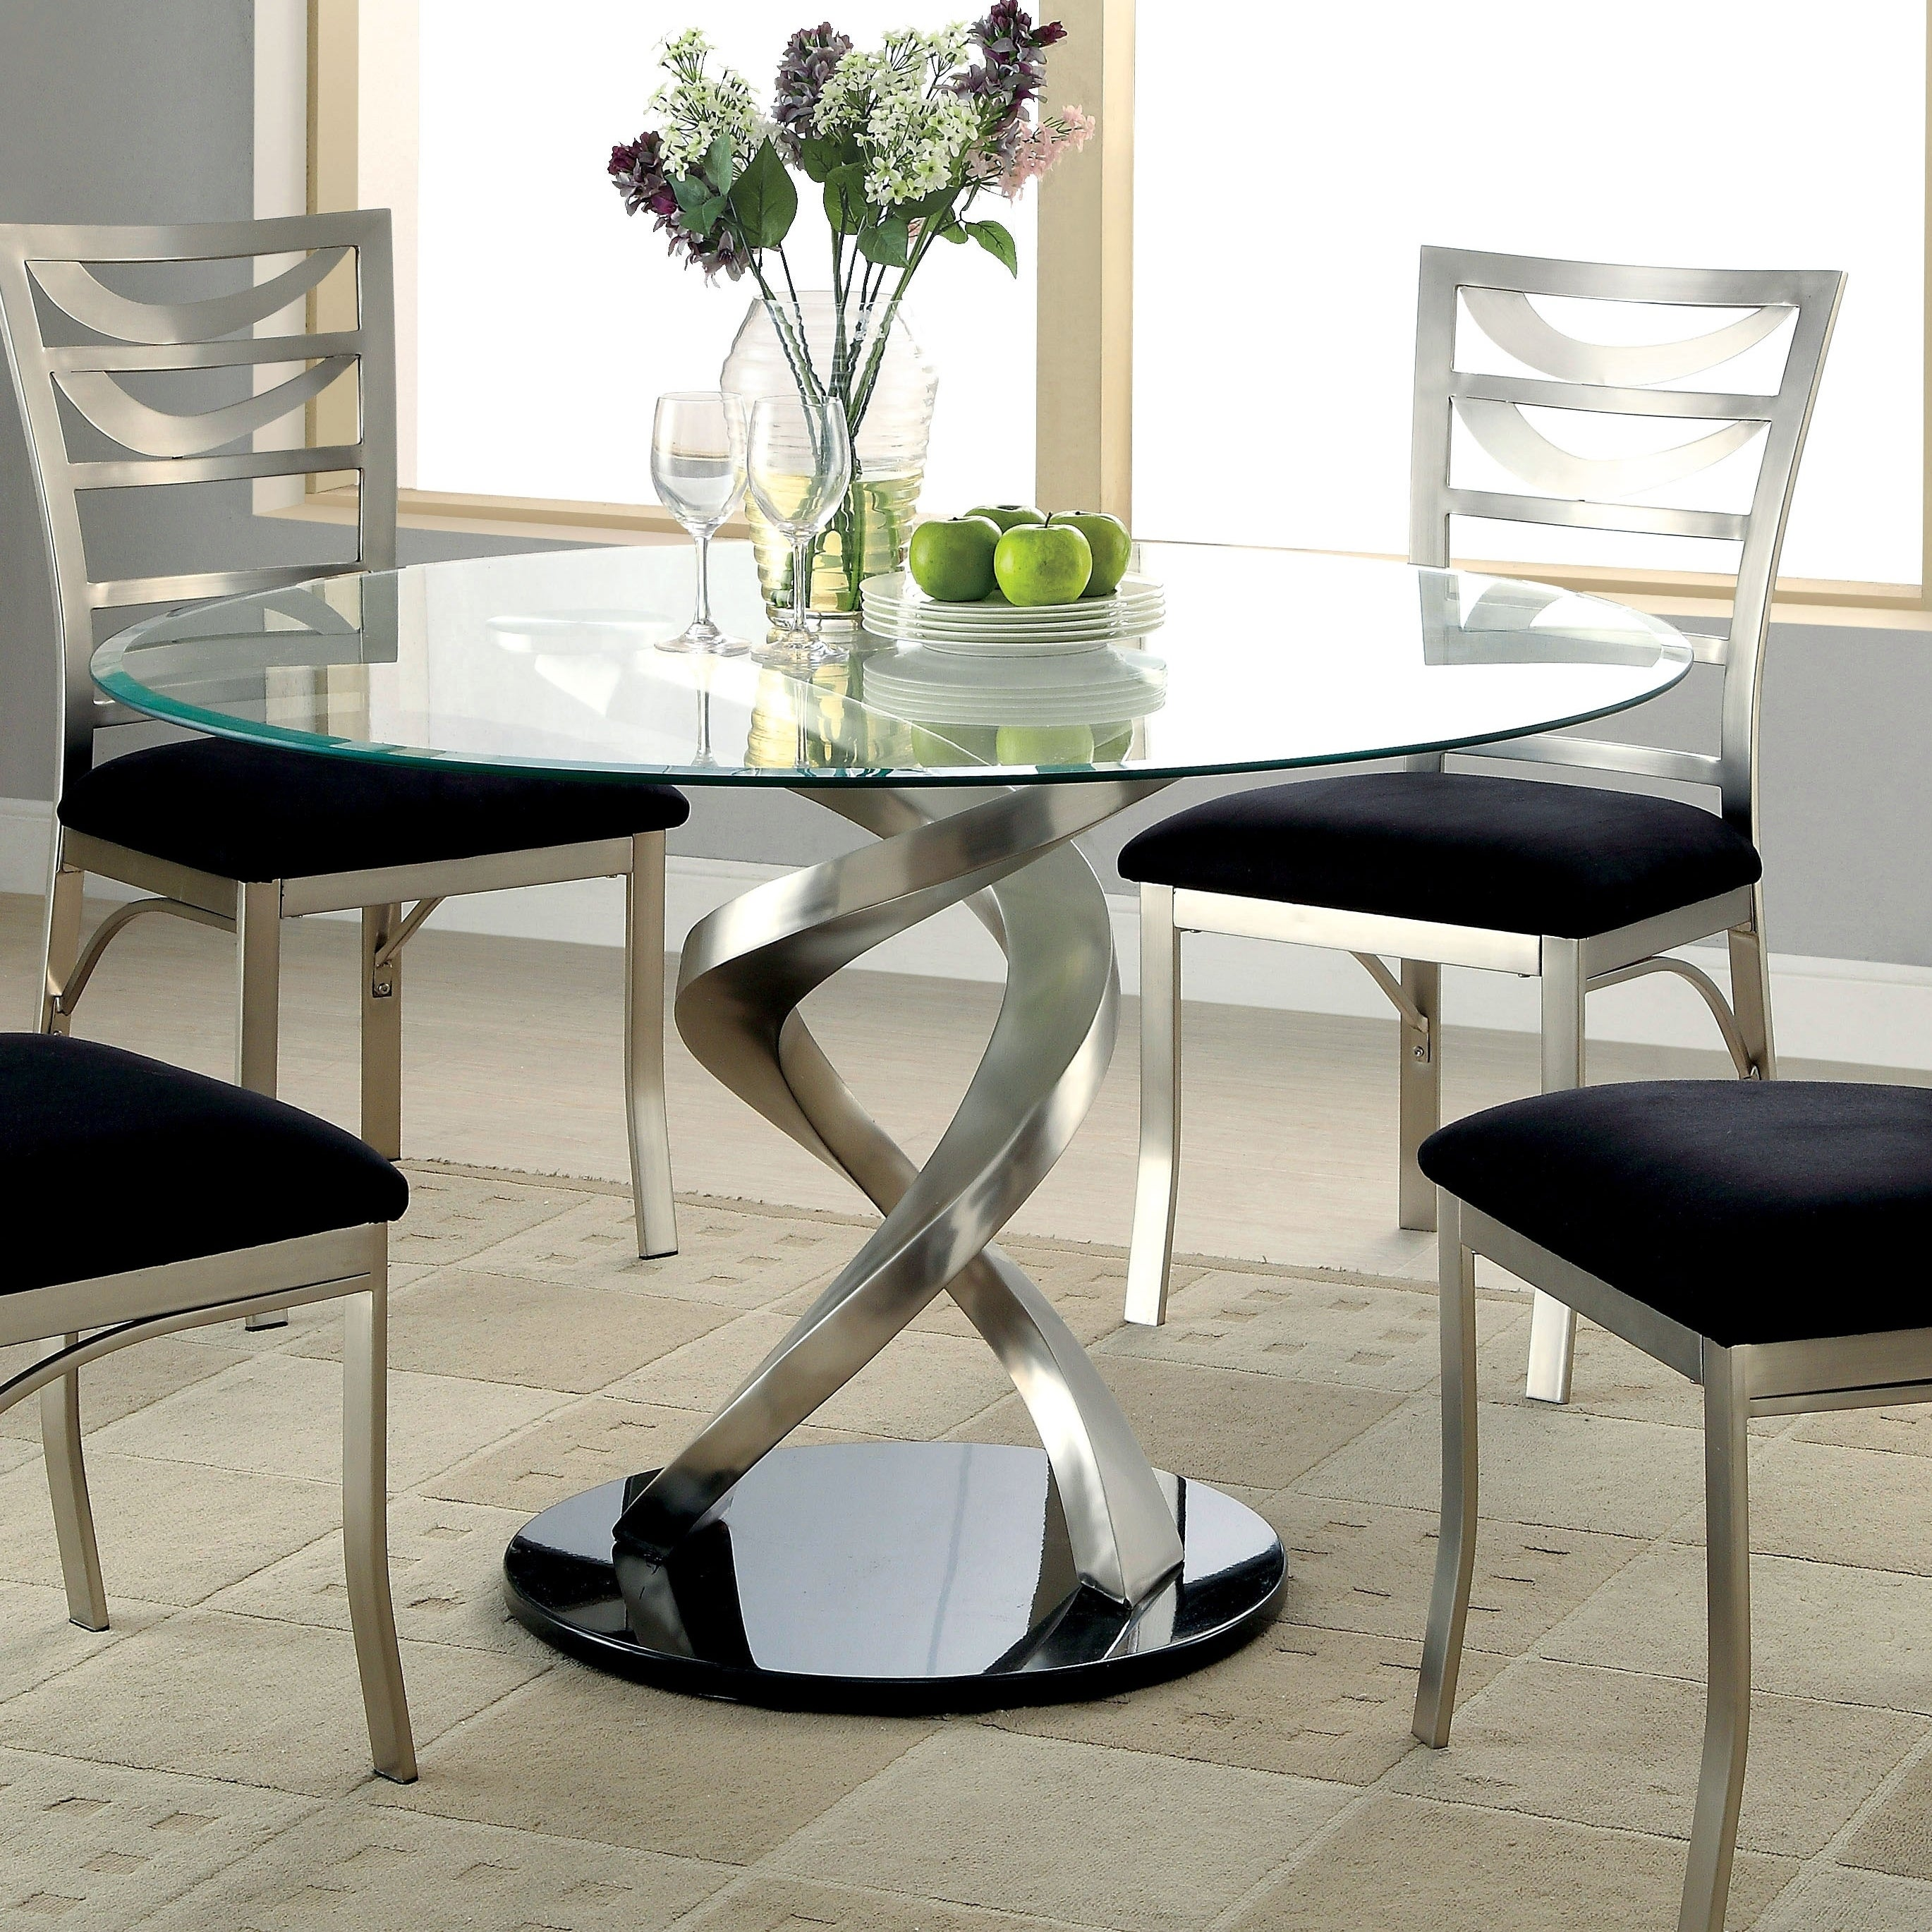 Furniture of america sculpture i silver glass top round dining table